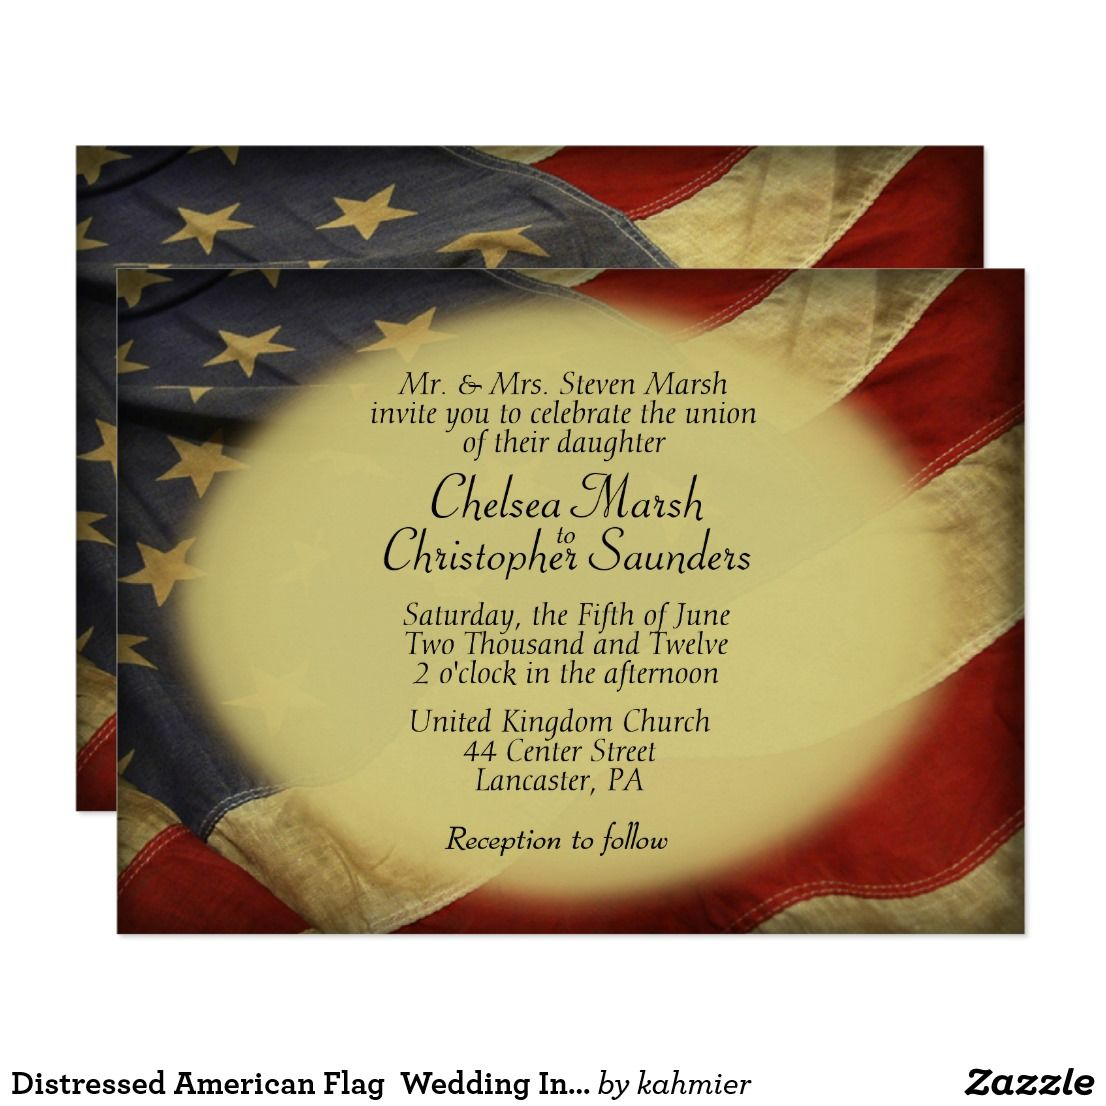 Distressed american flag wedding invitation in military